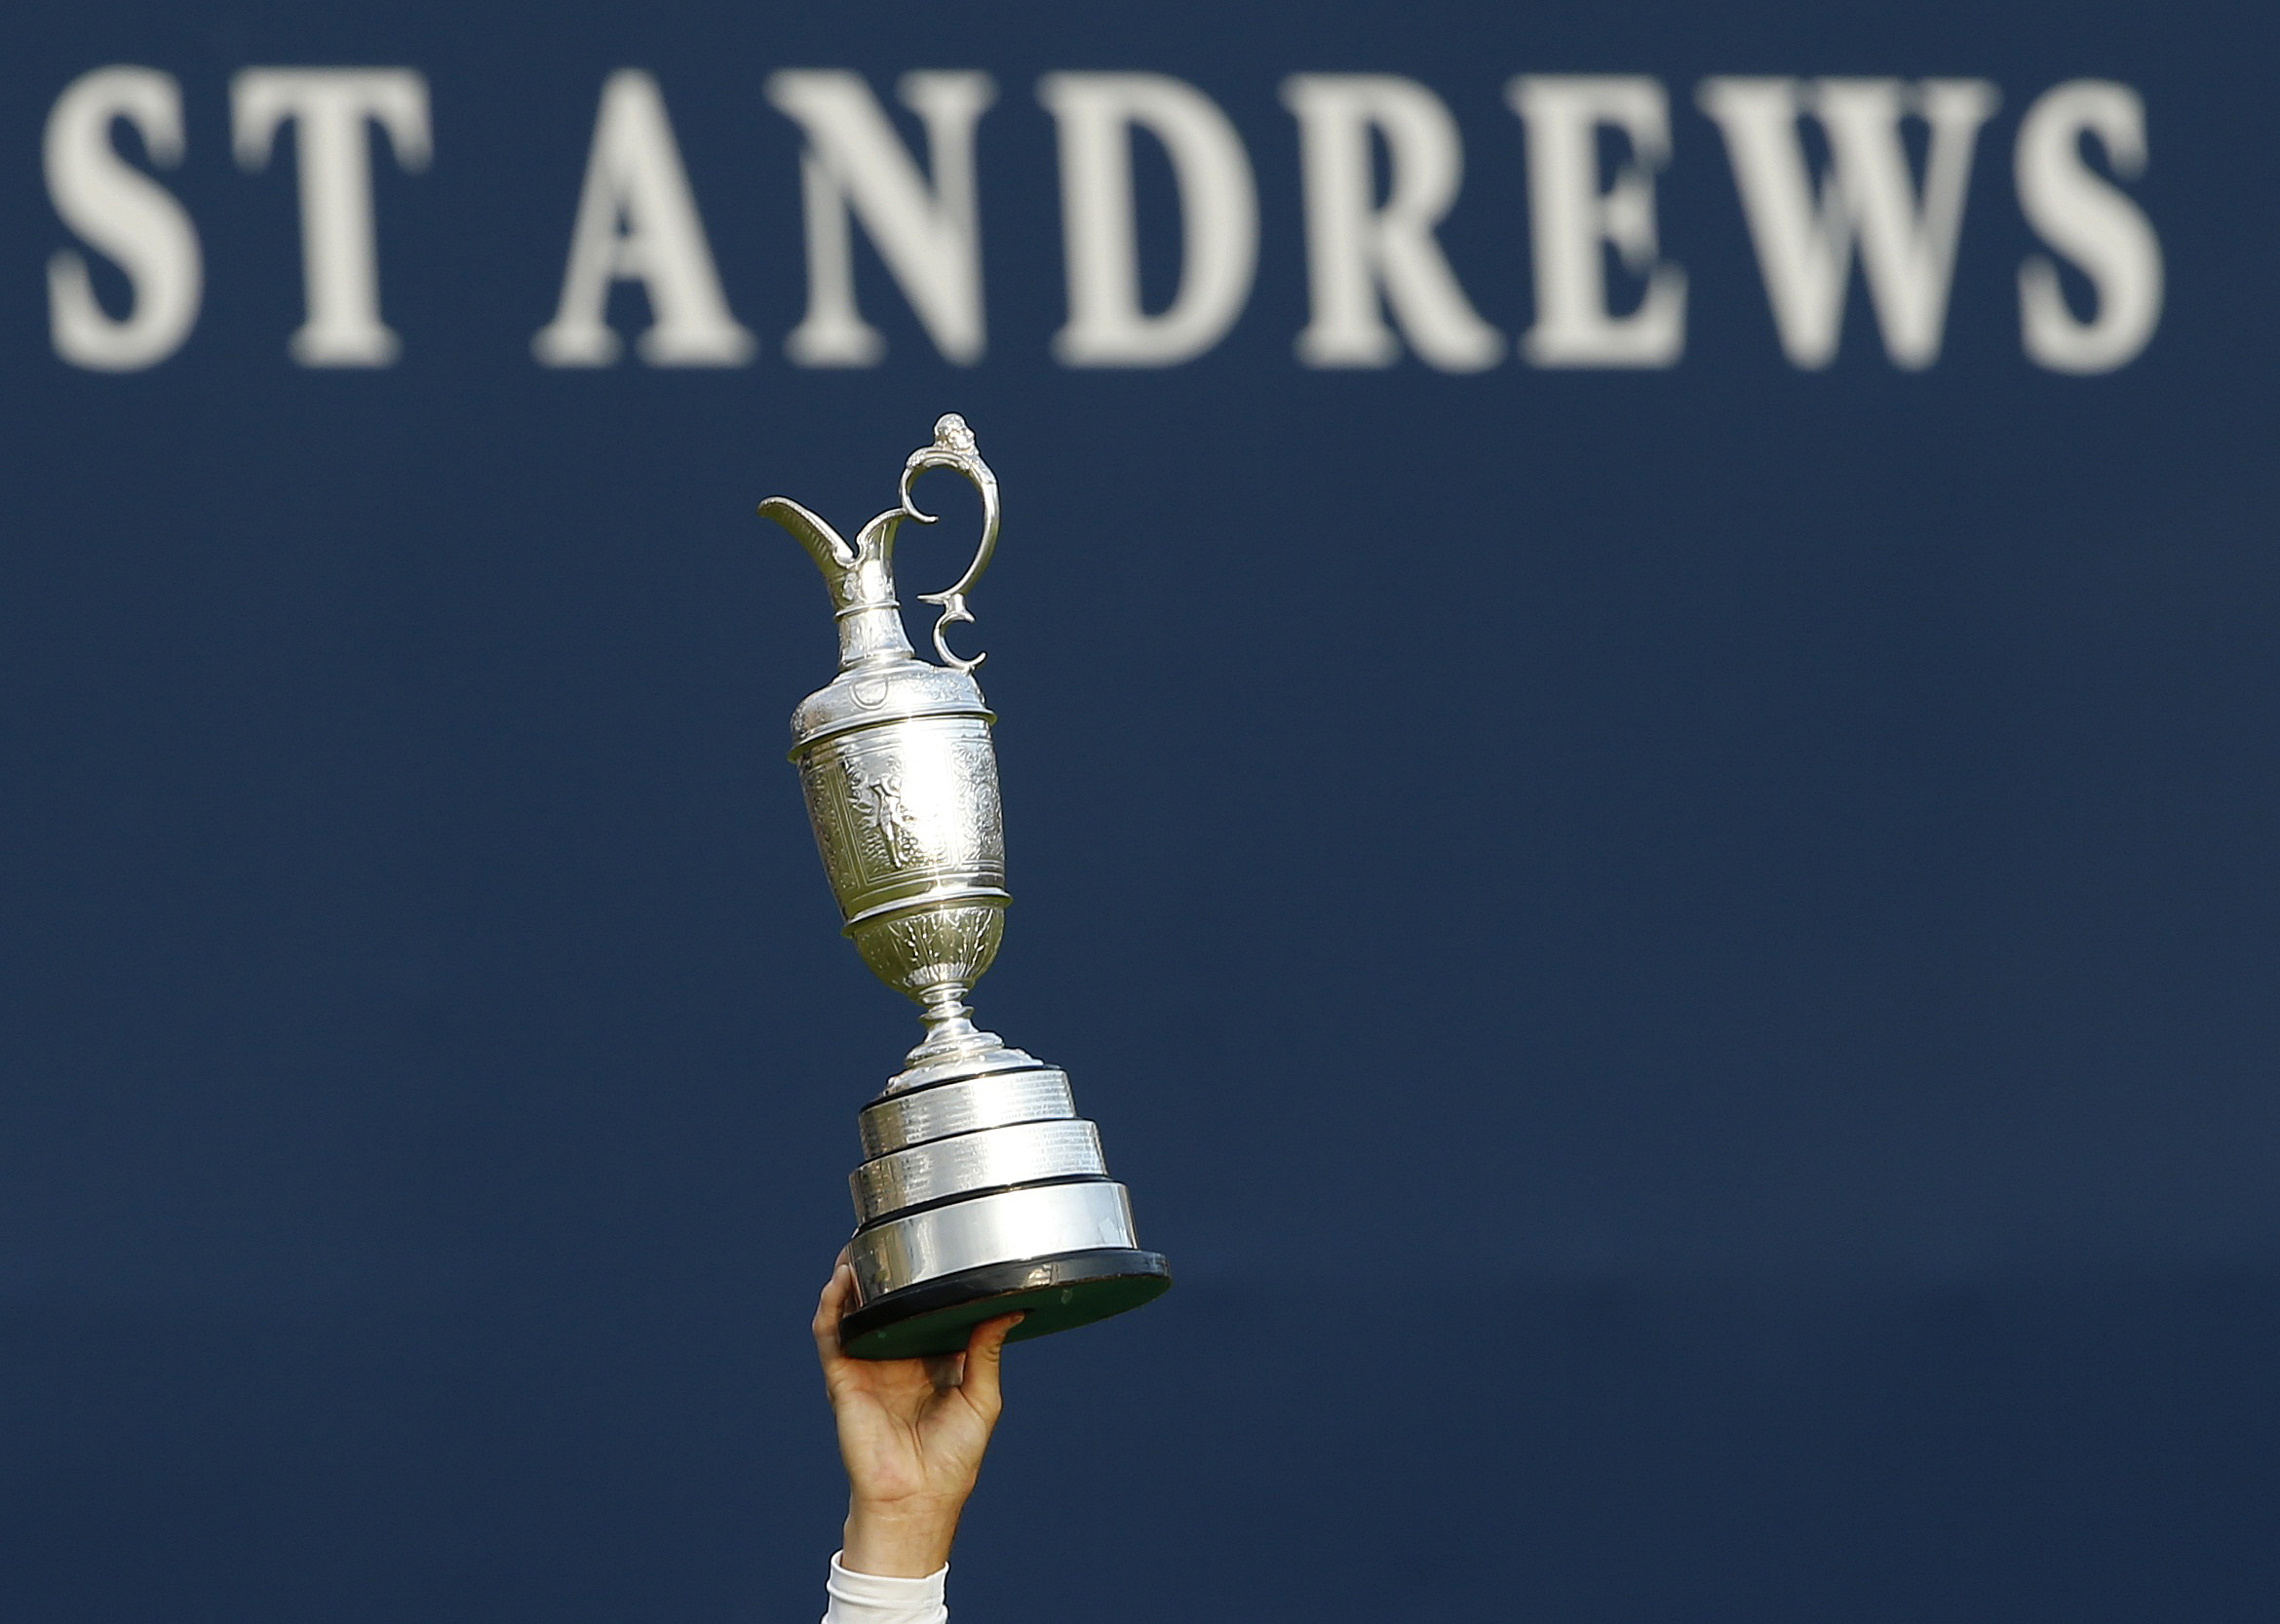 Johnson of the U.S. celebrates as he holds the Claret Jug after winning the British Open golf championship on the Old Course in St. Andrews, Scotland